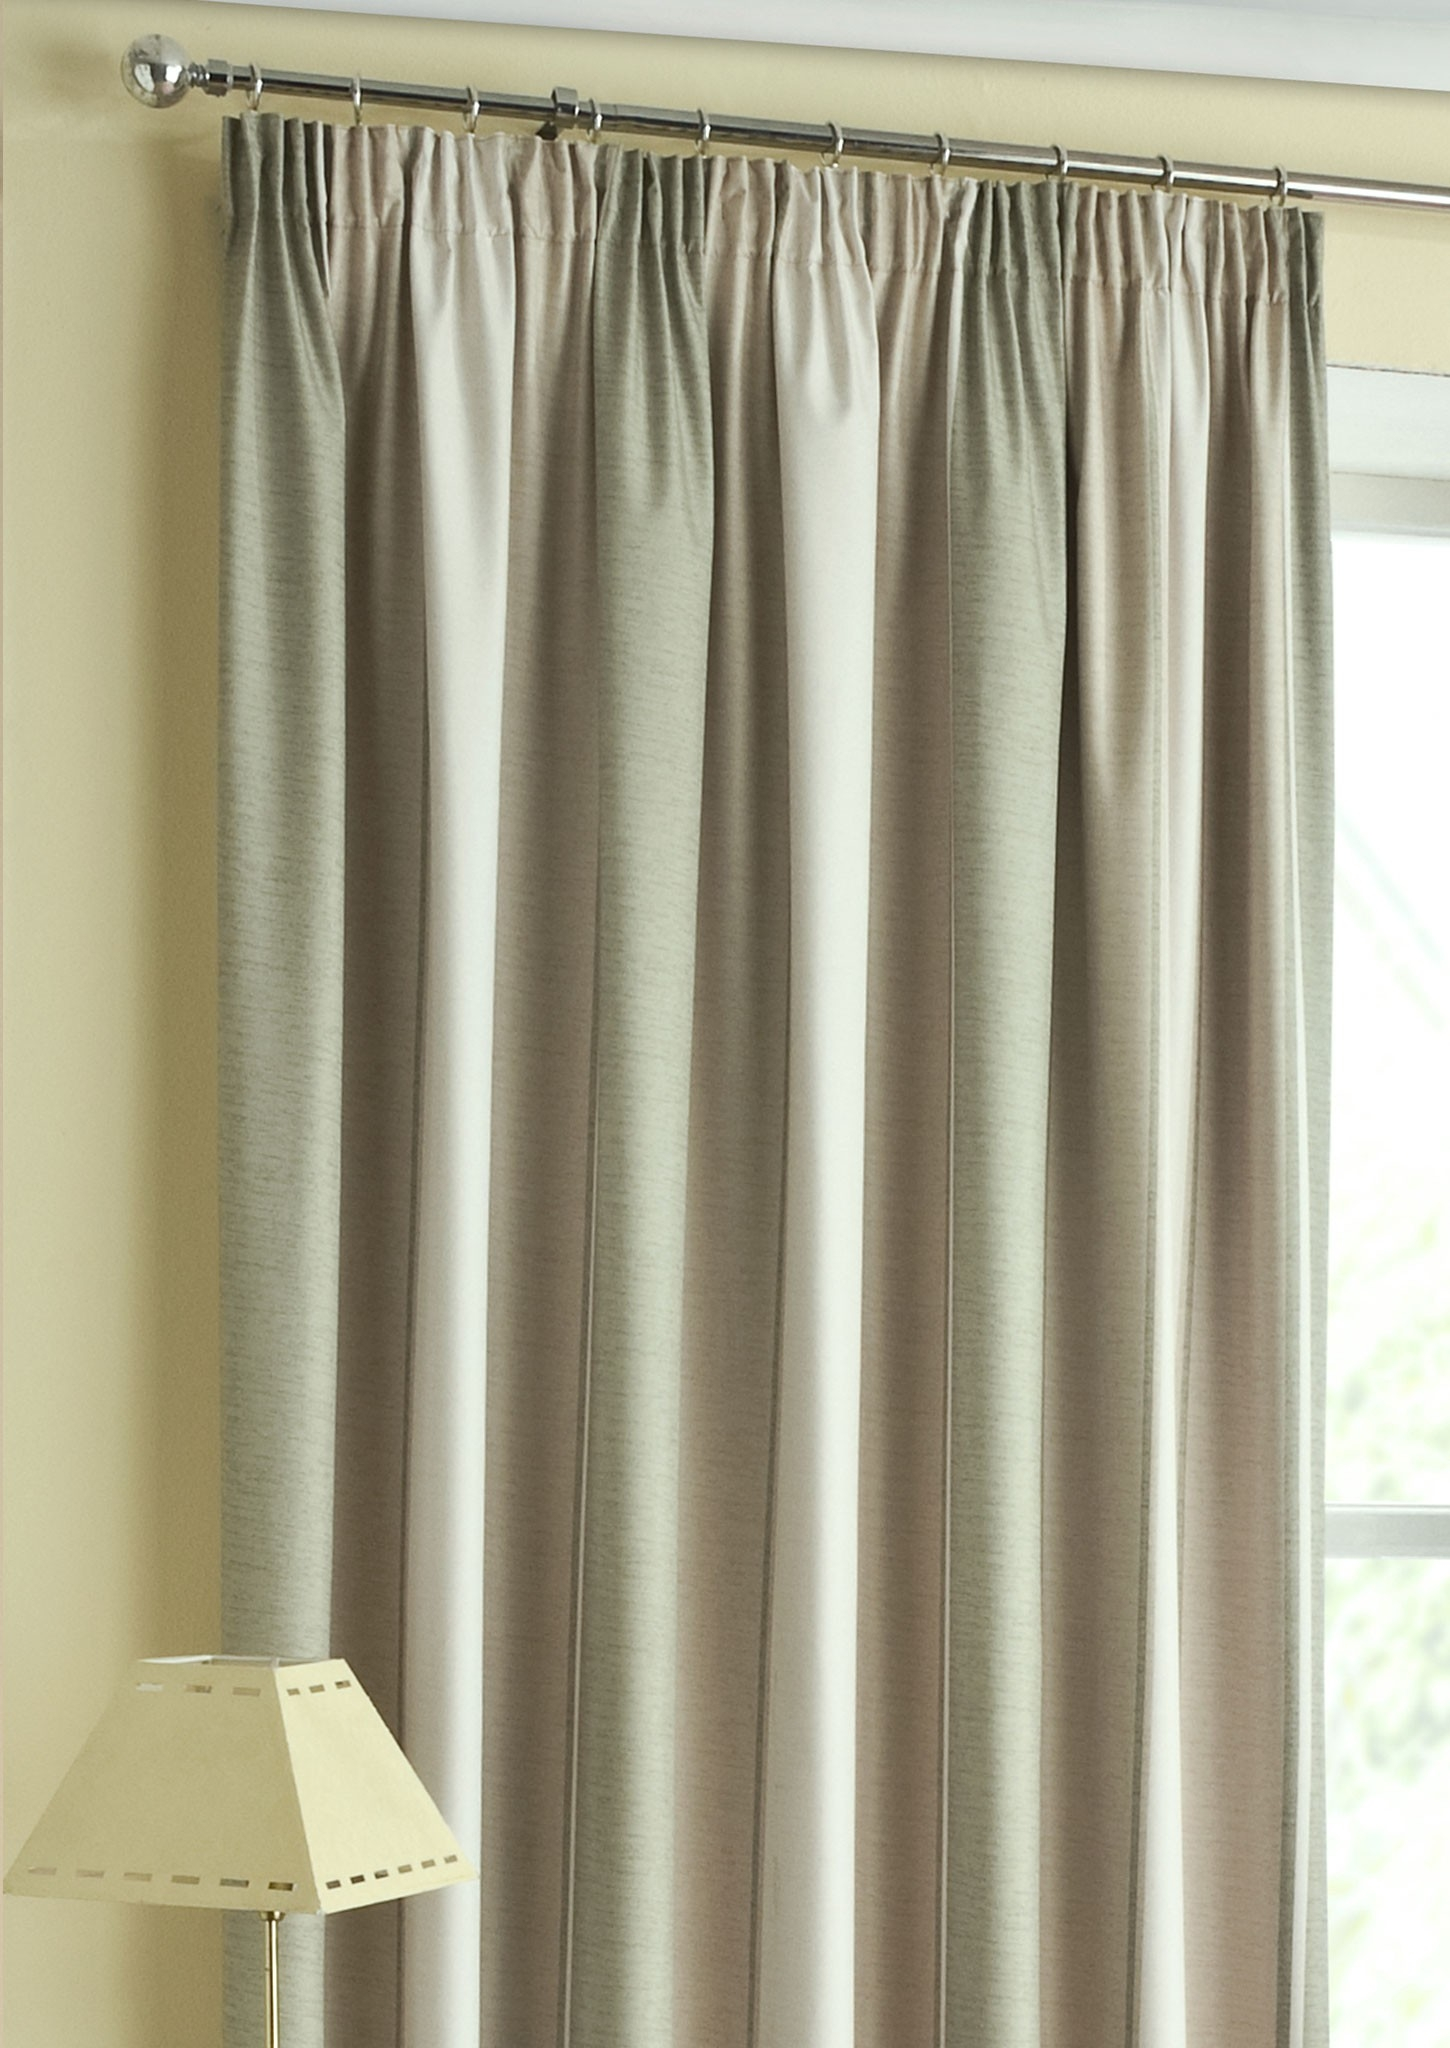 Twilight Green Thermal Pencil Pleat Curtains Inside Pencil Pleat Blackout Curtains (Image 12 of 15)